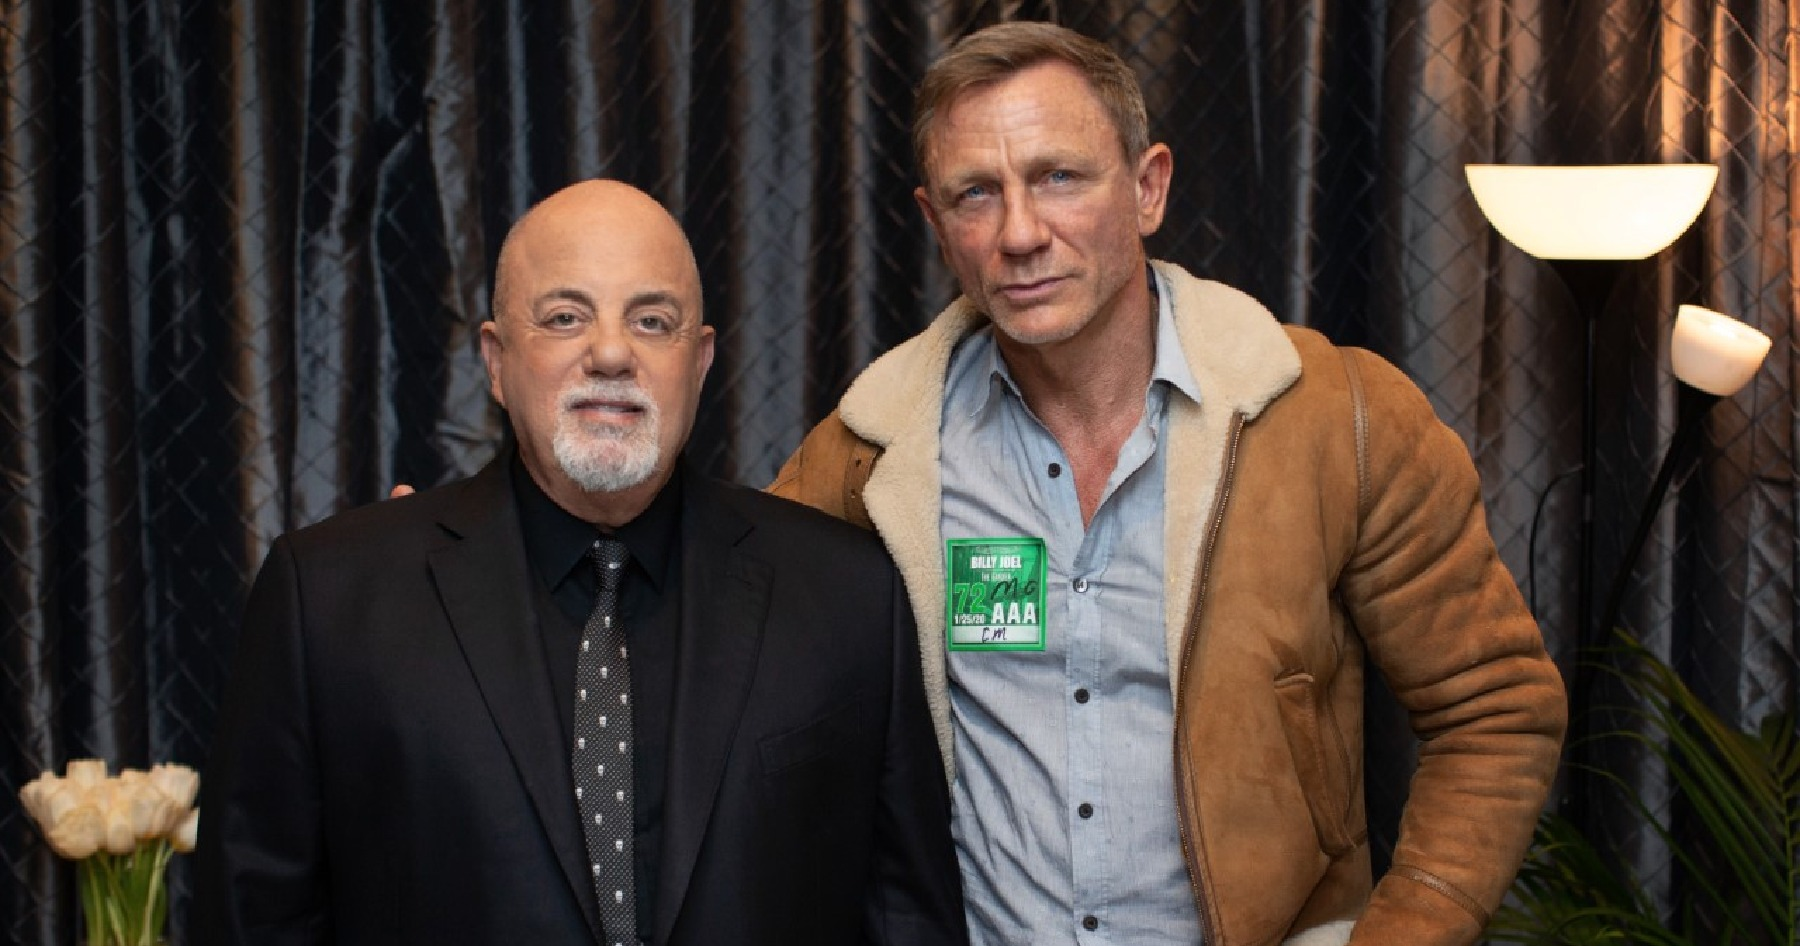 Billy Joel and Daniel Craig backstage at Madison Square Garden January 25, 2020